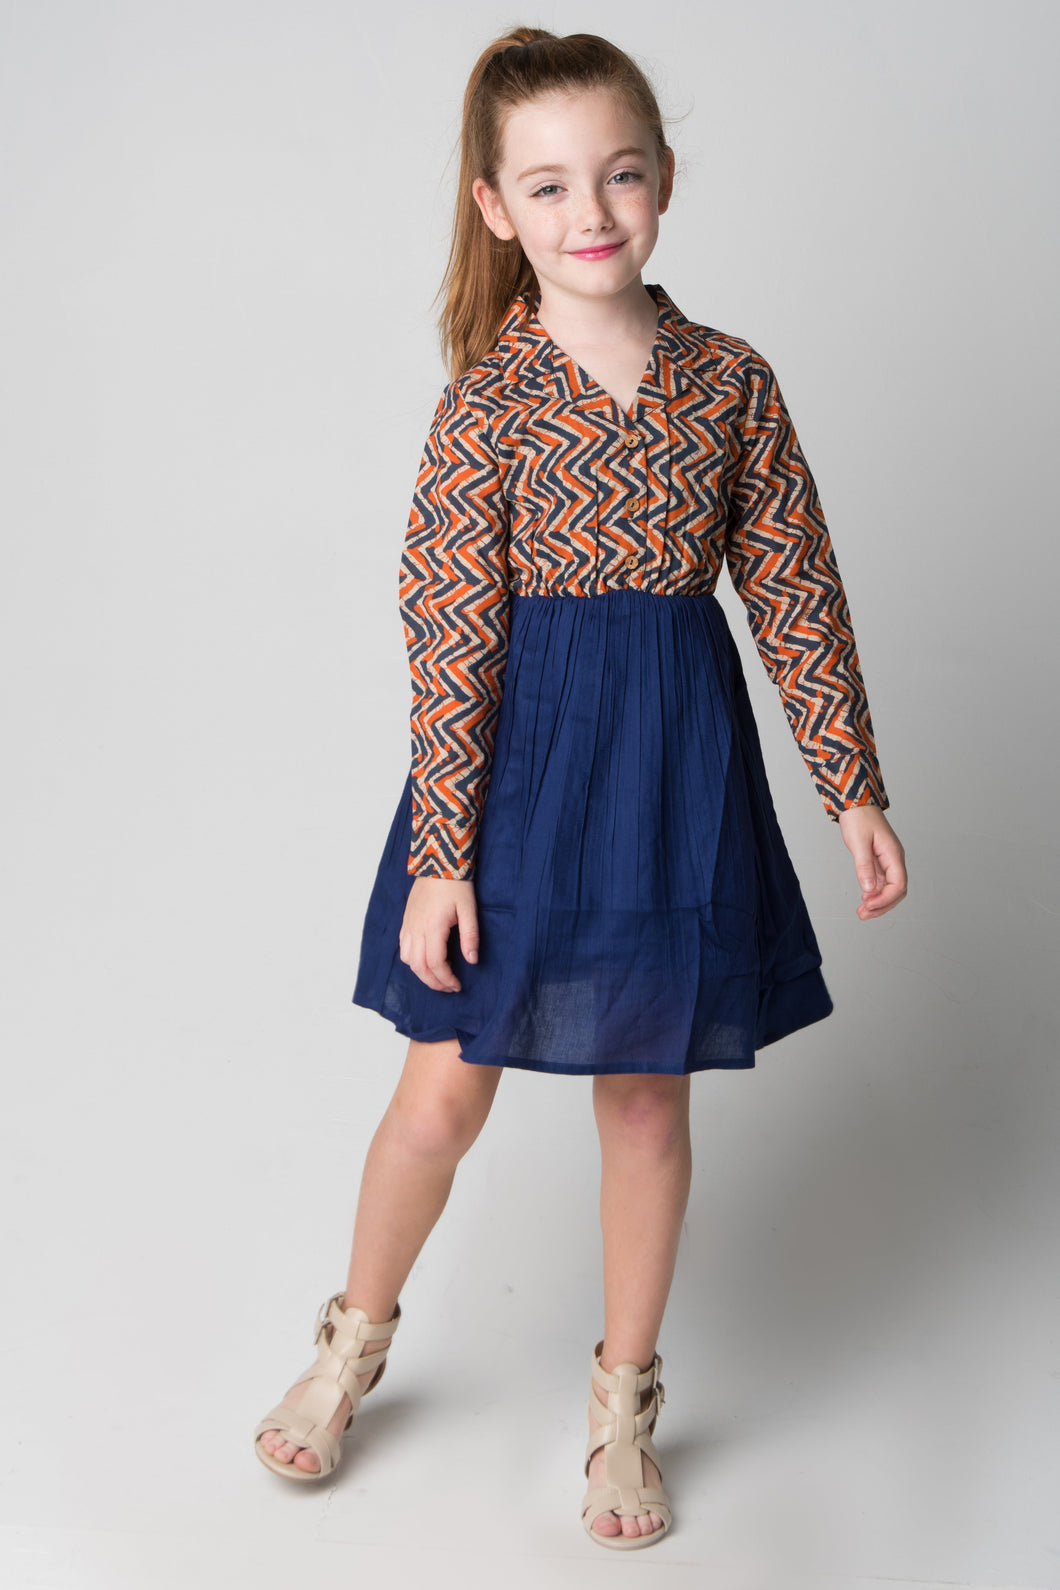 Navy & Orange Chevron Shirt and Skirt One Piece Dress - Kids Clothing, Dress - Girls Dress, Yo Baby Online - Yo Baby